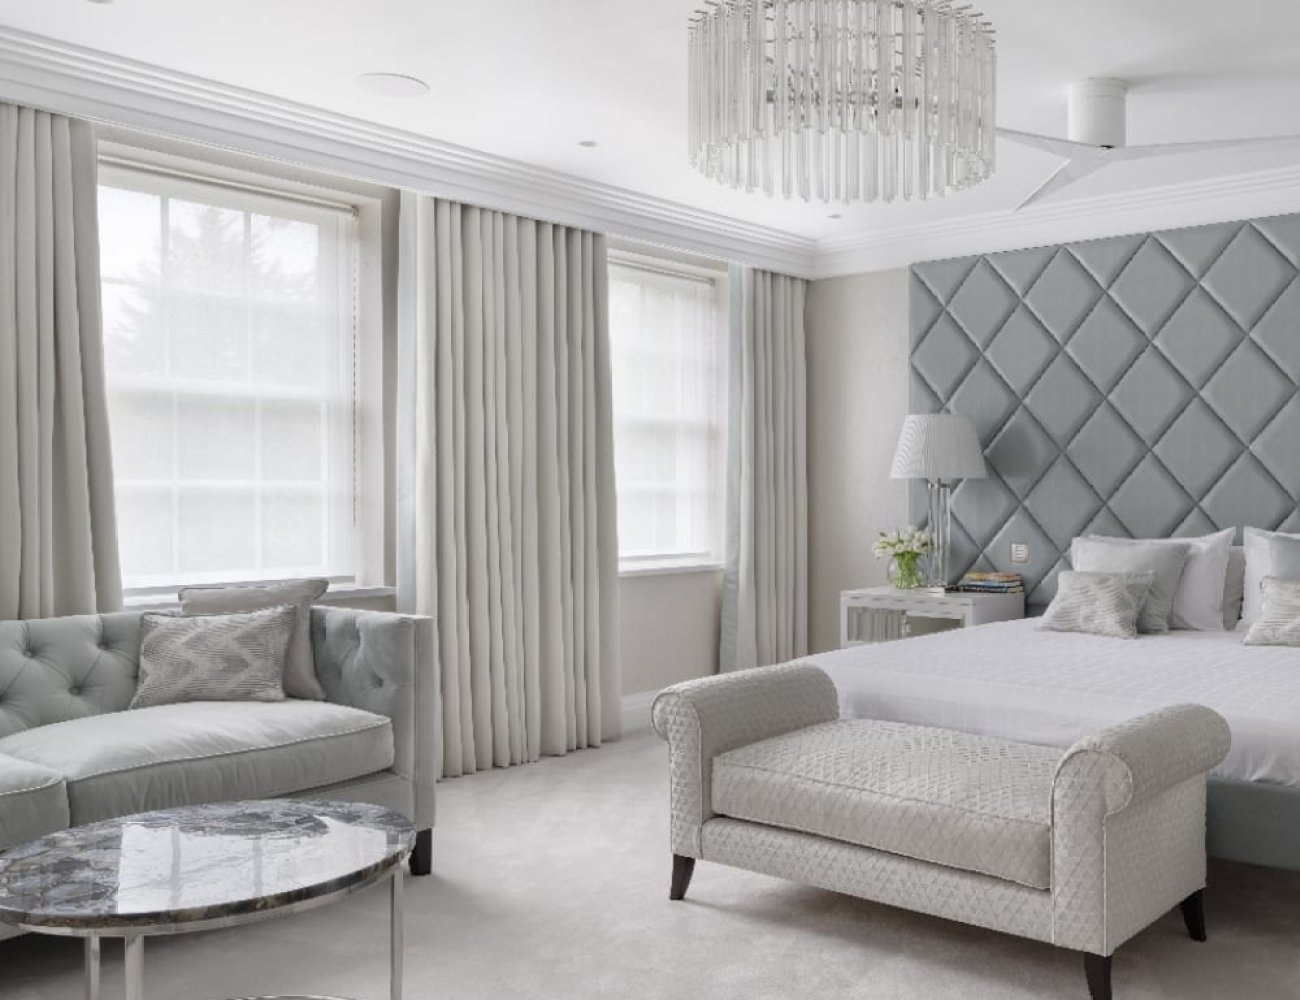 Lutron blinds and curtains